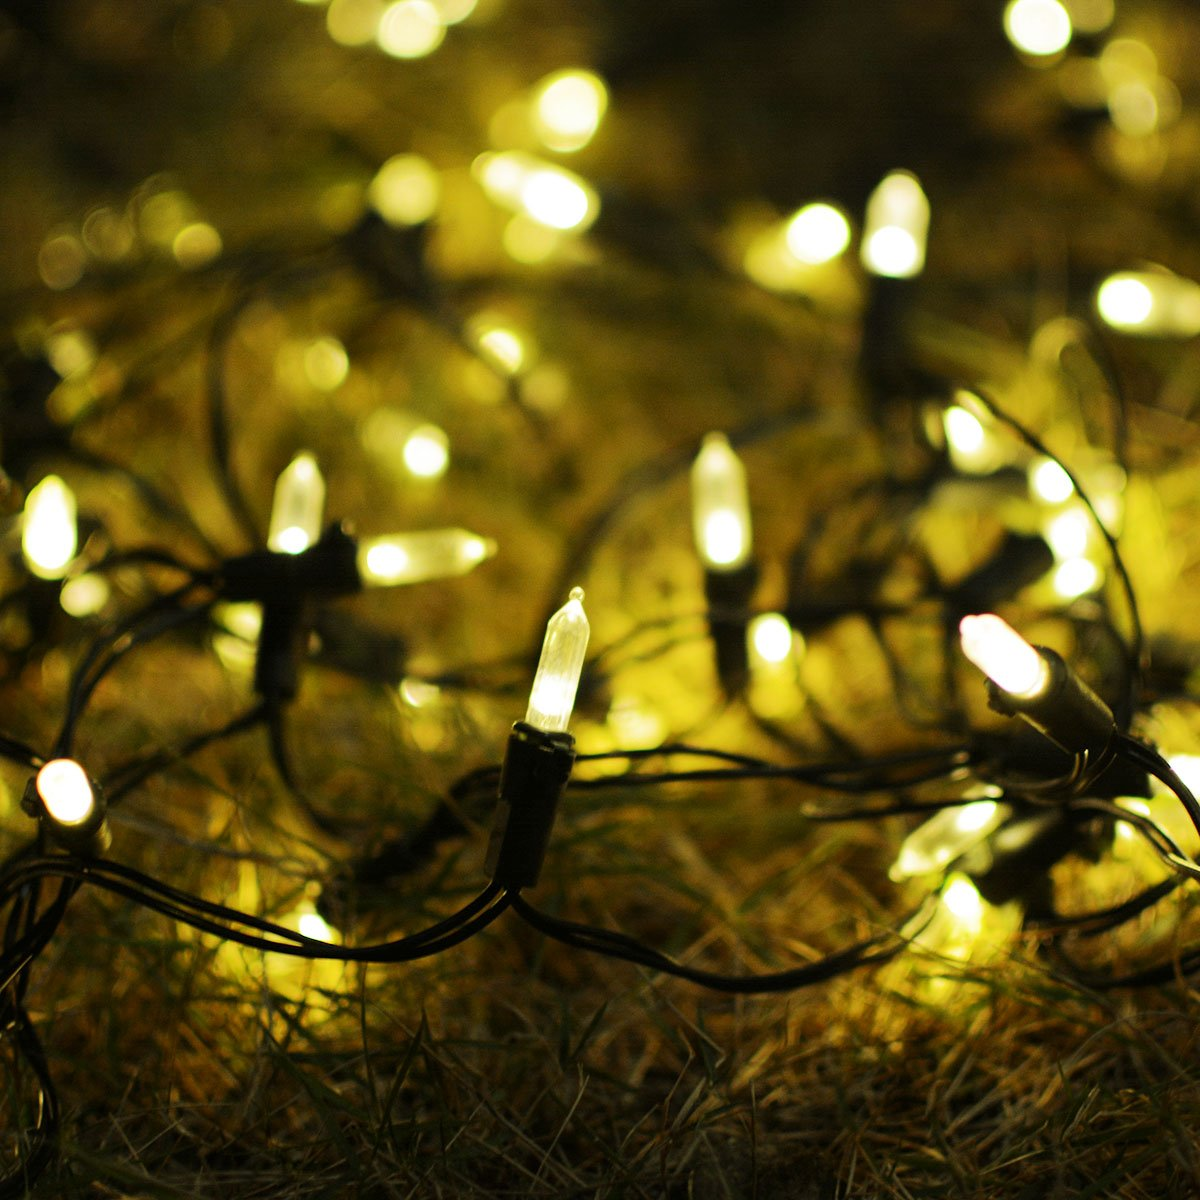 Amazon.com : Lalapao M5 Battery Operated String Lights 100 LED ...